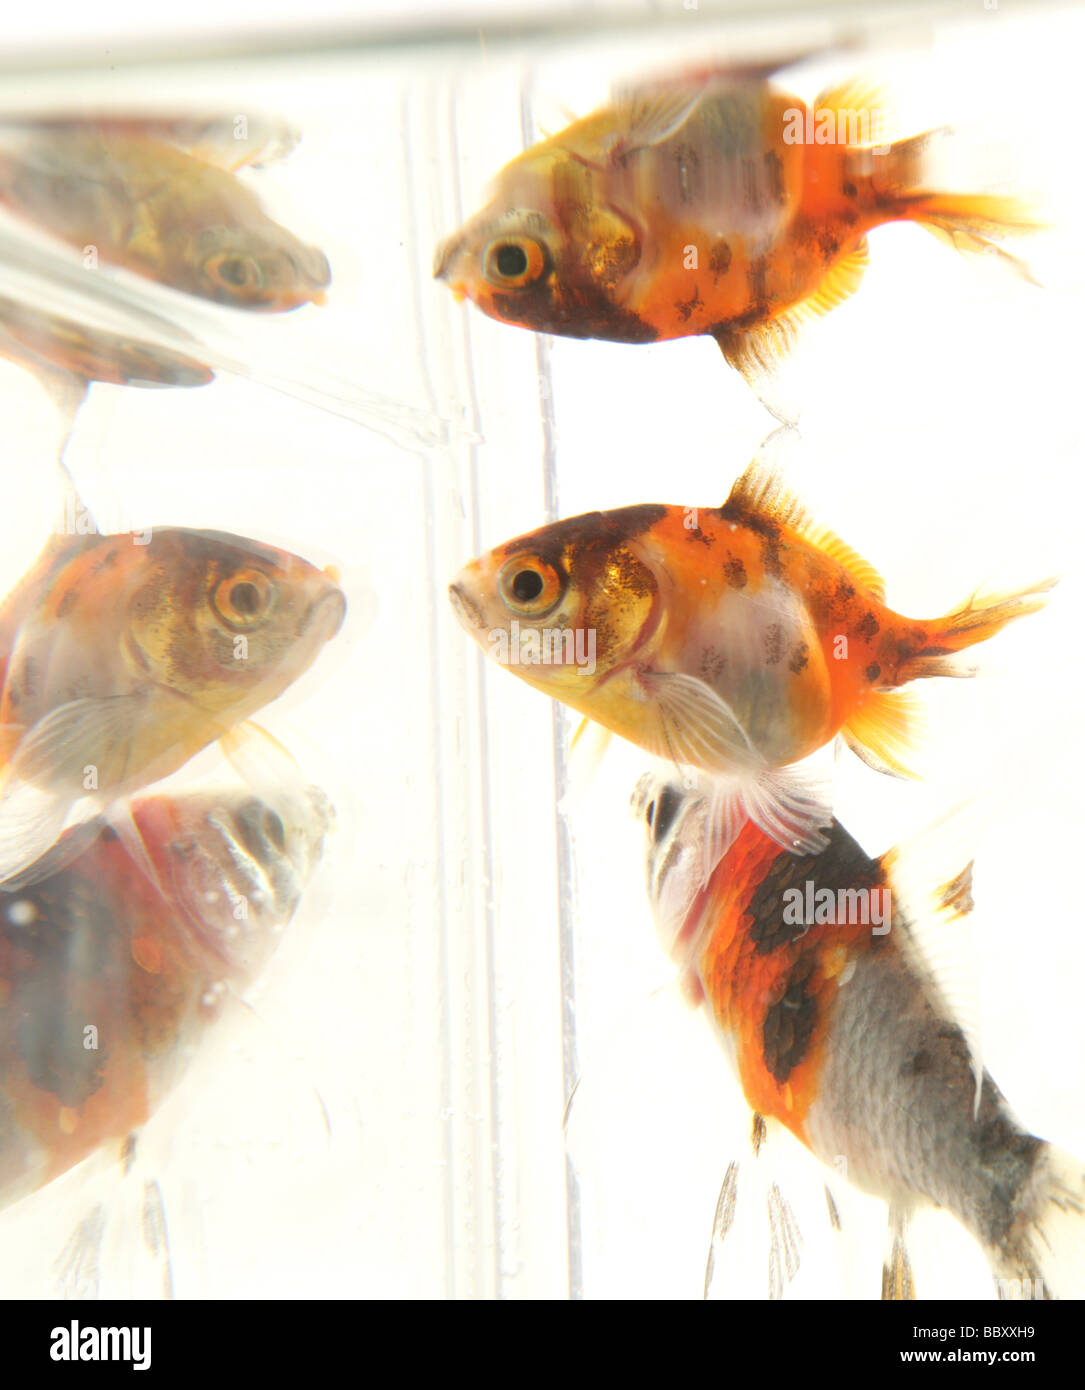 Goldfish reflections Carassius auratus auratus fishtank in a studio Stock Photo